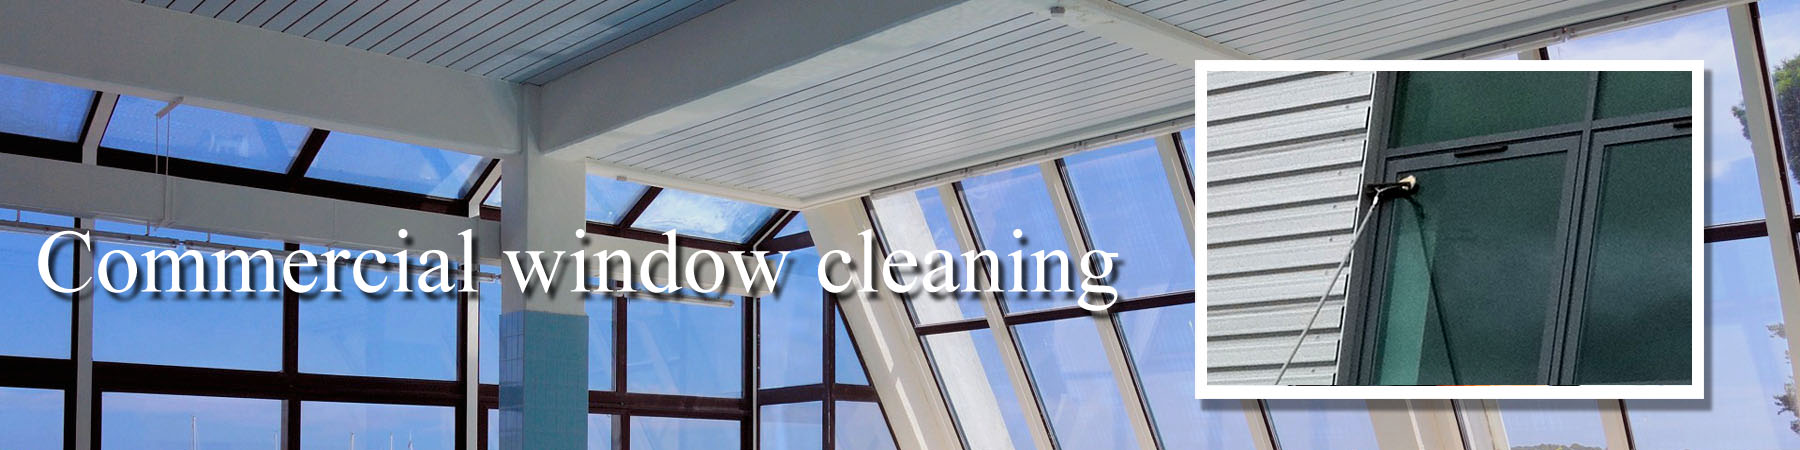 Window cleaning J R Cleaning